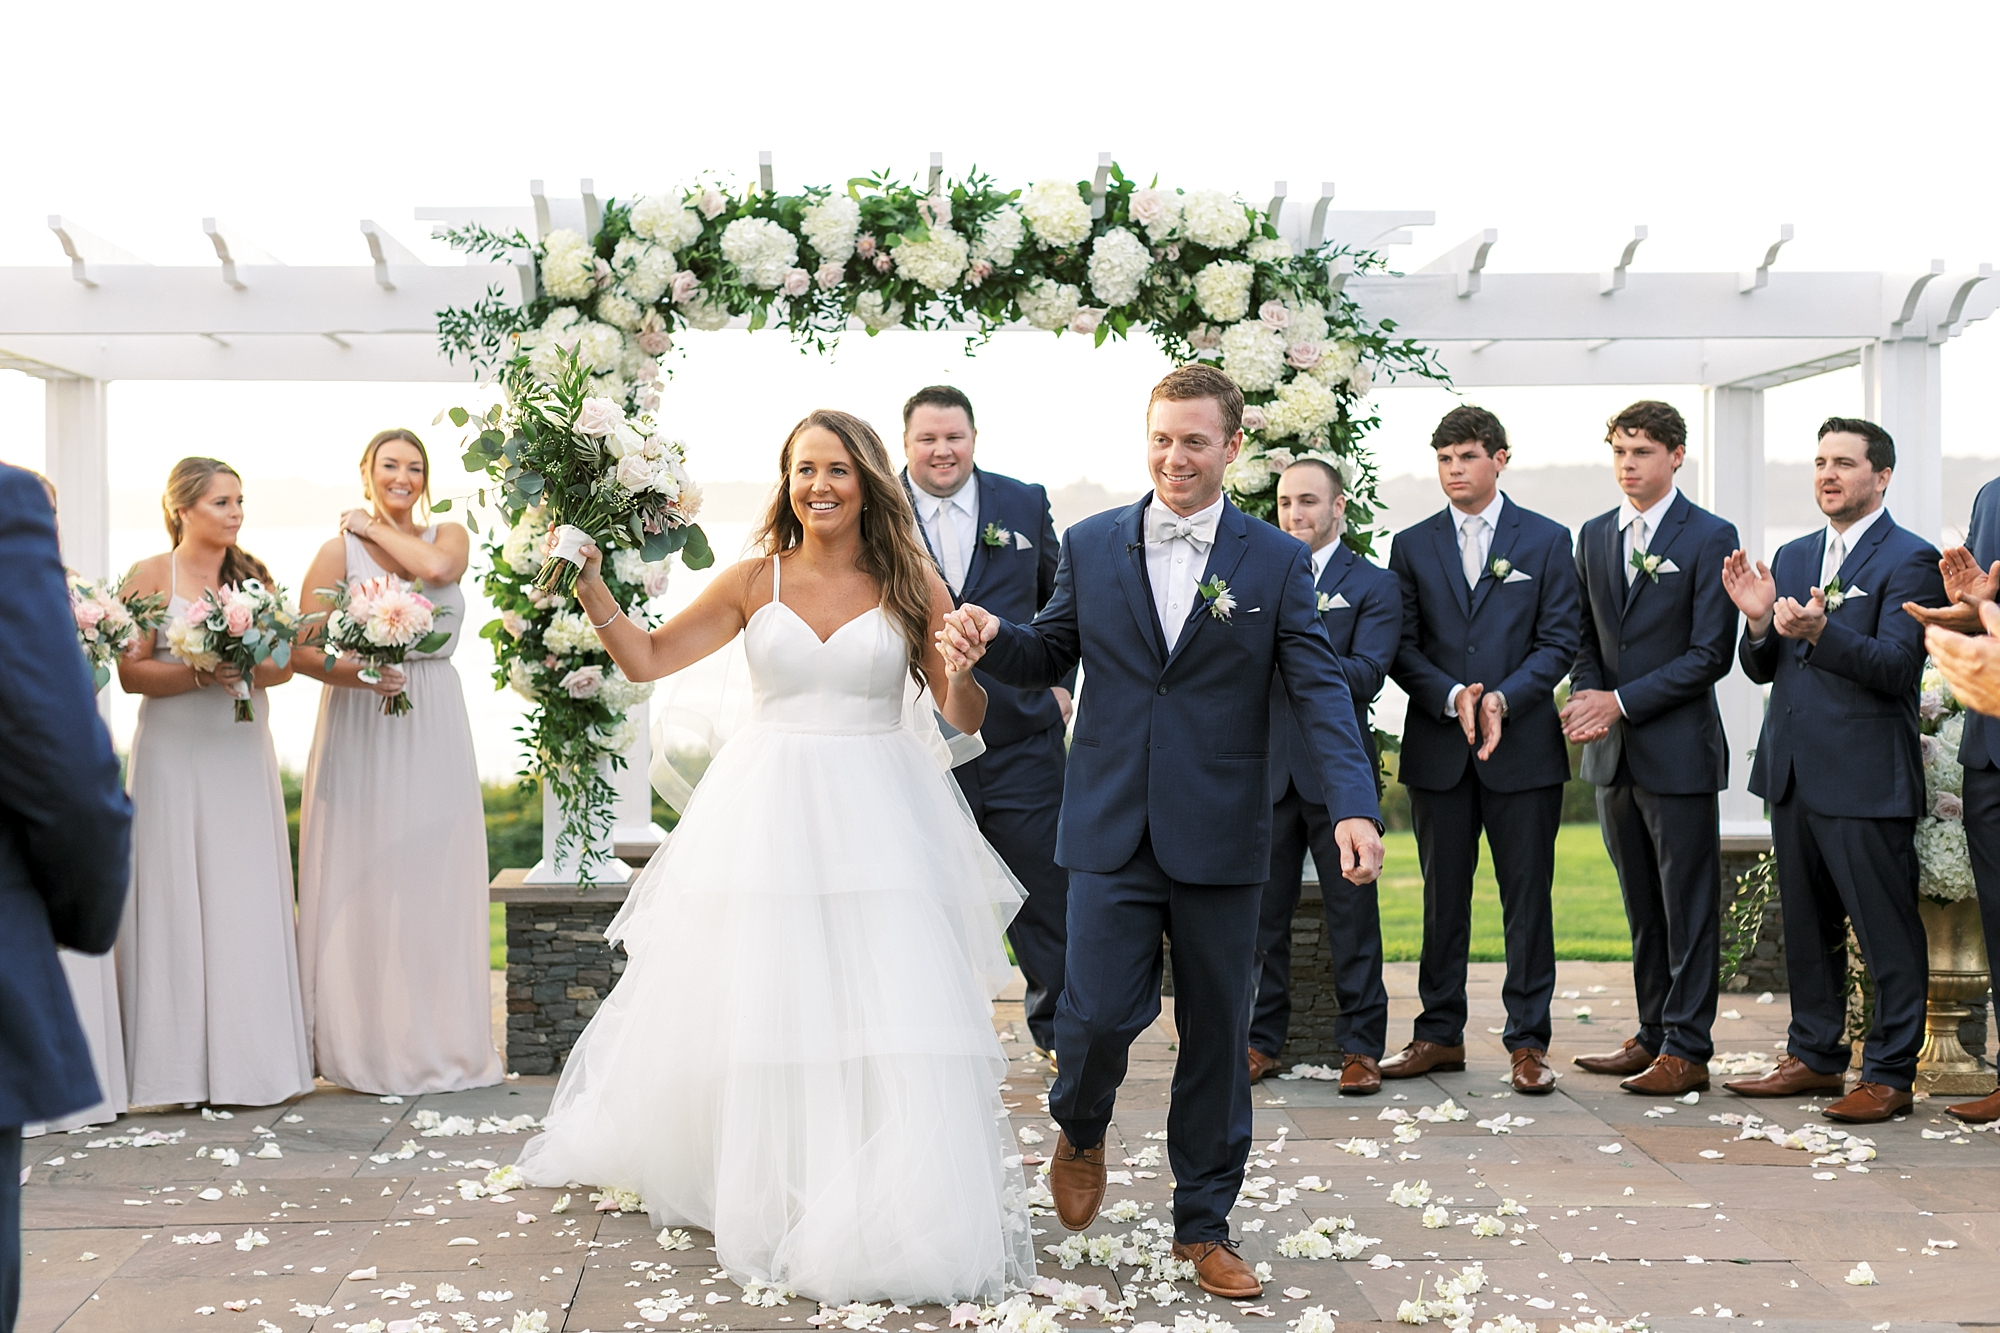 Coastal and Authentic Film Wedding Photography in Newport Rhode Island by Magdalena Studios 0069